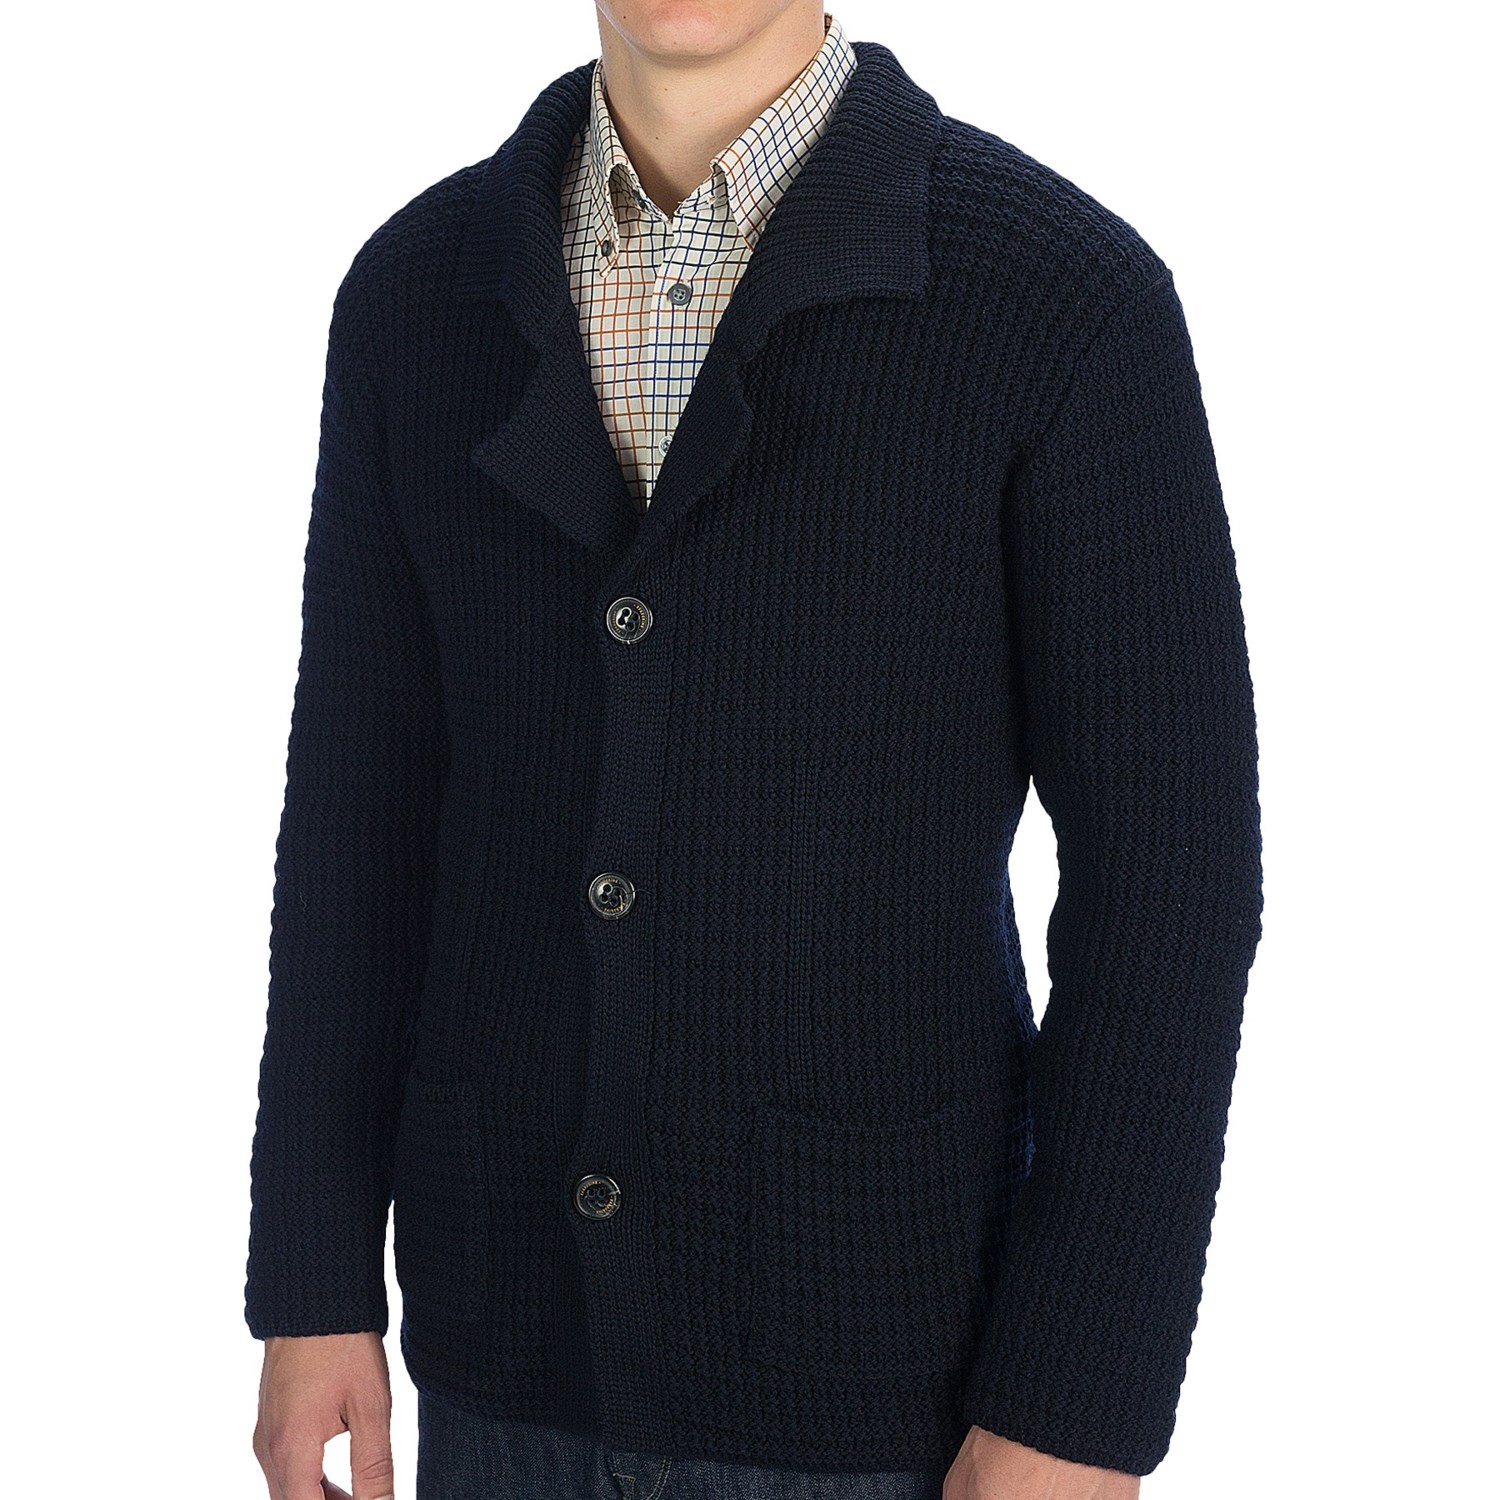 Our men's wool coats and jackets are meticulously constructed of the finest wool. We have designed a classic collection of wool jackets, wool vests, and men's wool sweaters and wool pullovers to keep you comfortable, warm, and looking good.